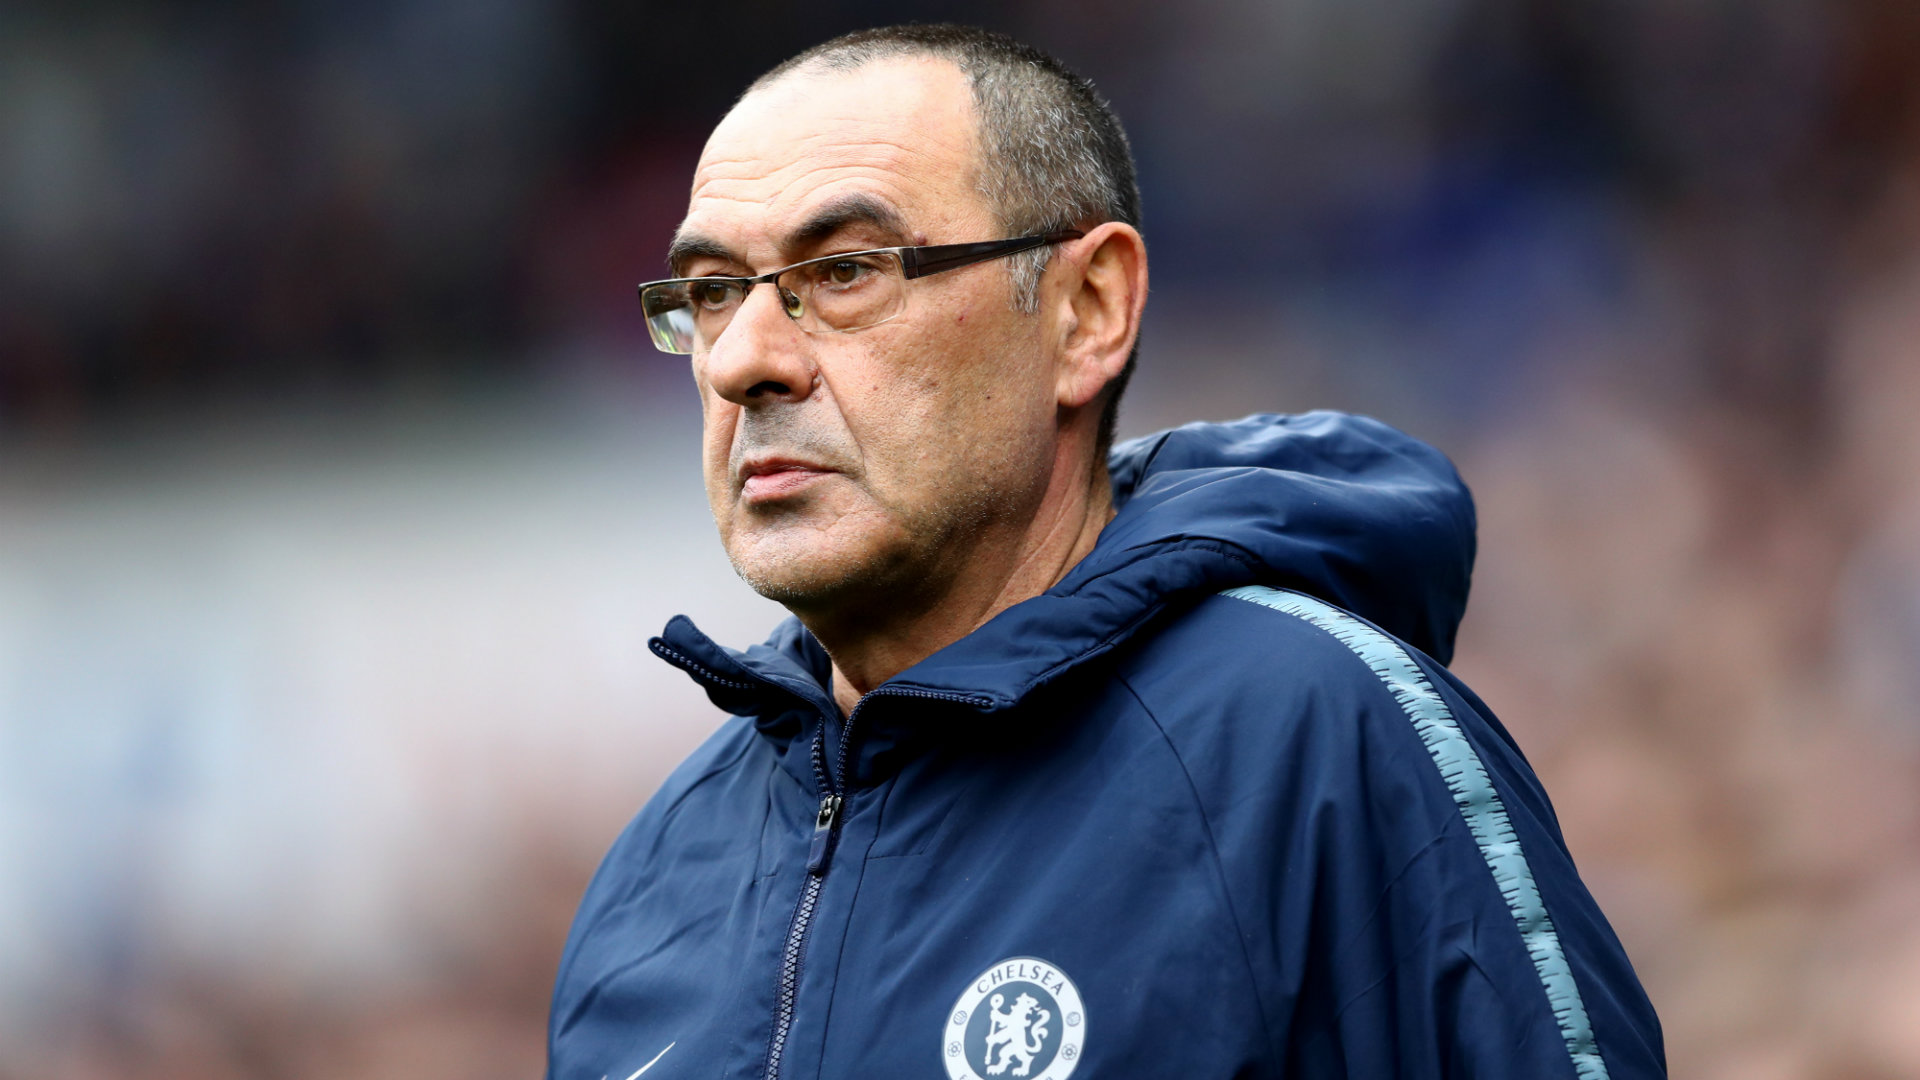 Chelsea manager Sarri downplays Hudson-Odoi's England success